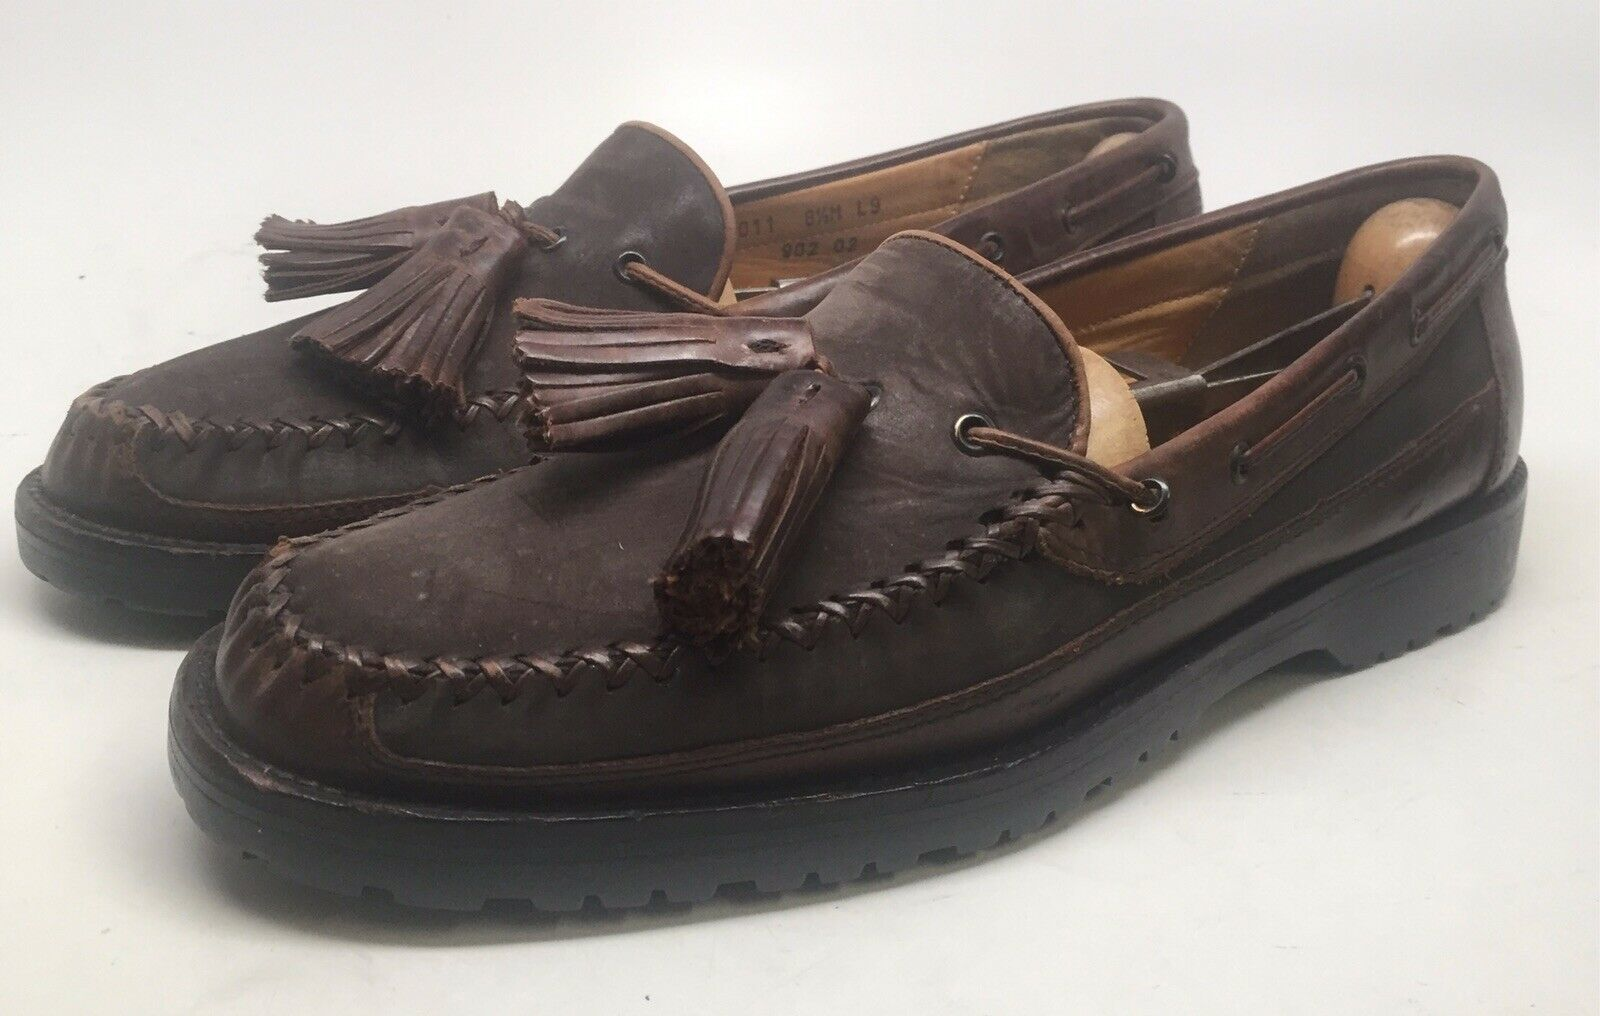 d51e54187a3 S l1600. S l1600. Previous. COLE HAAN Men Brown Leather Suede Dress Casual  Slip On Tassel Loafers Size ...